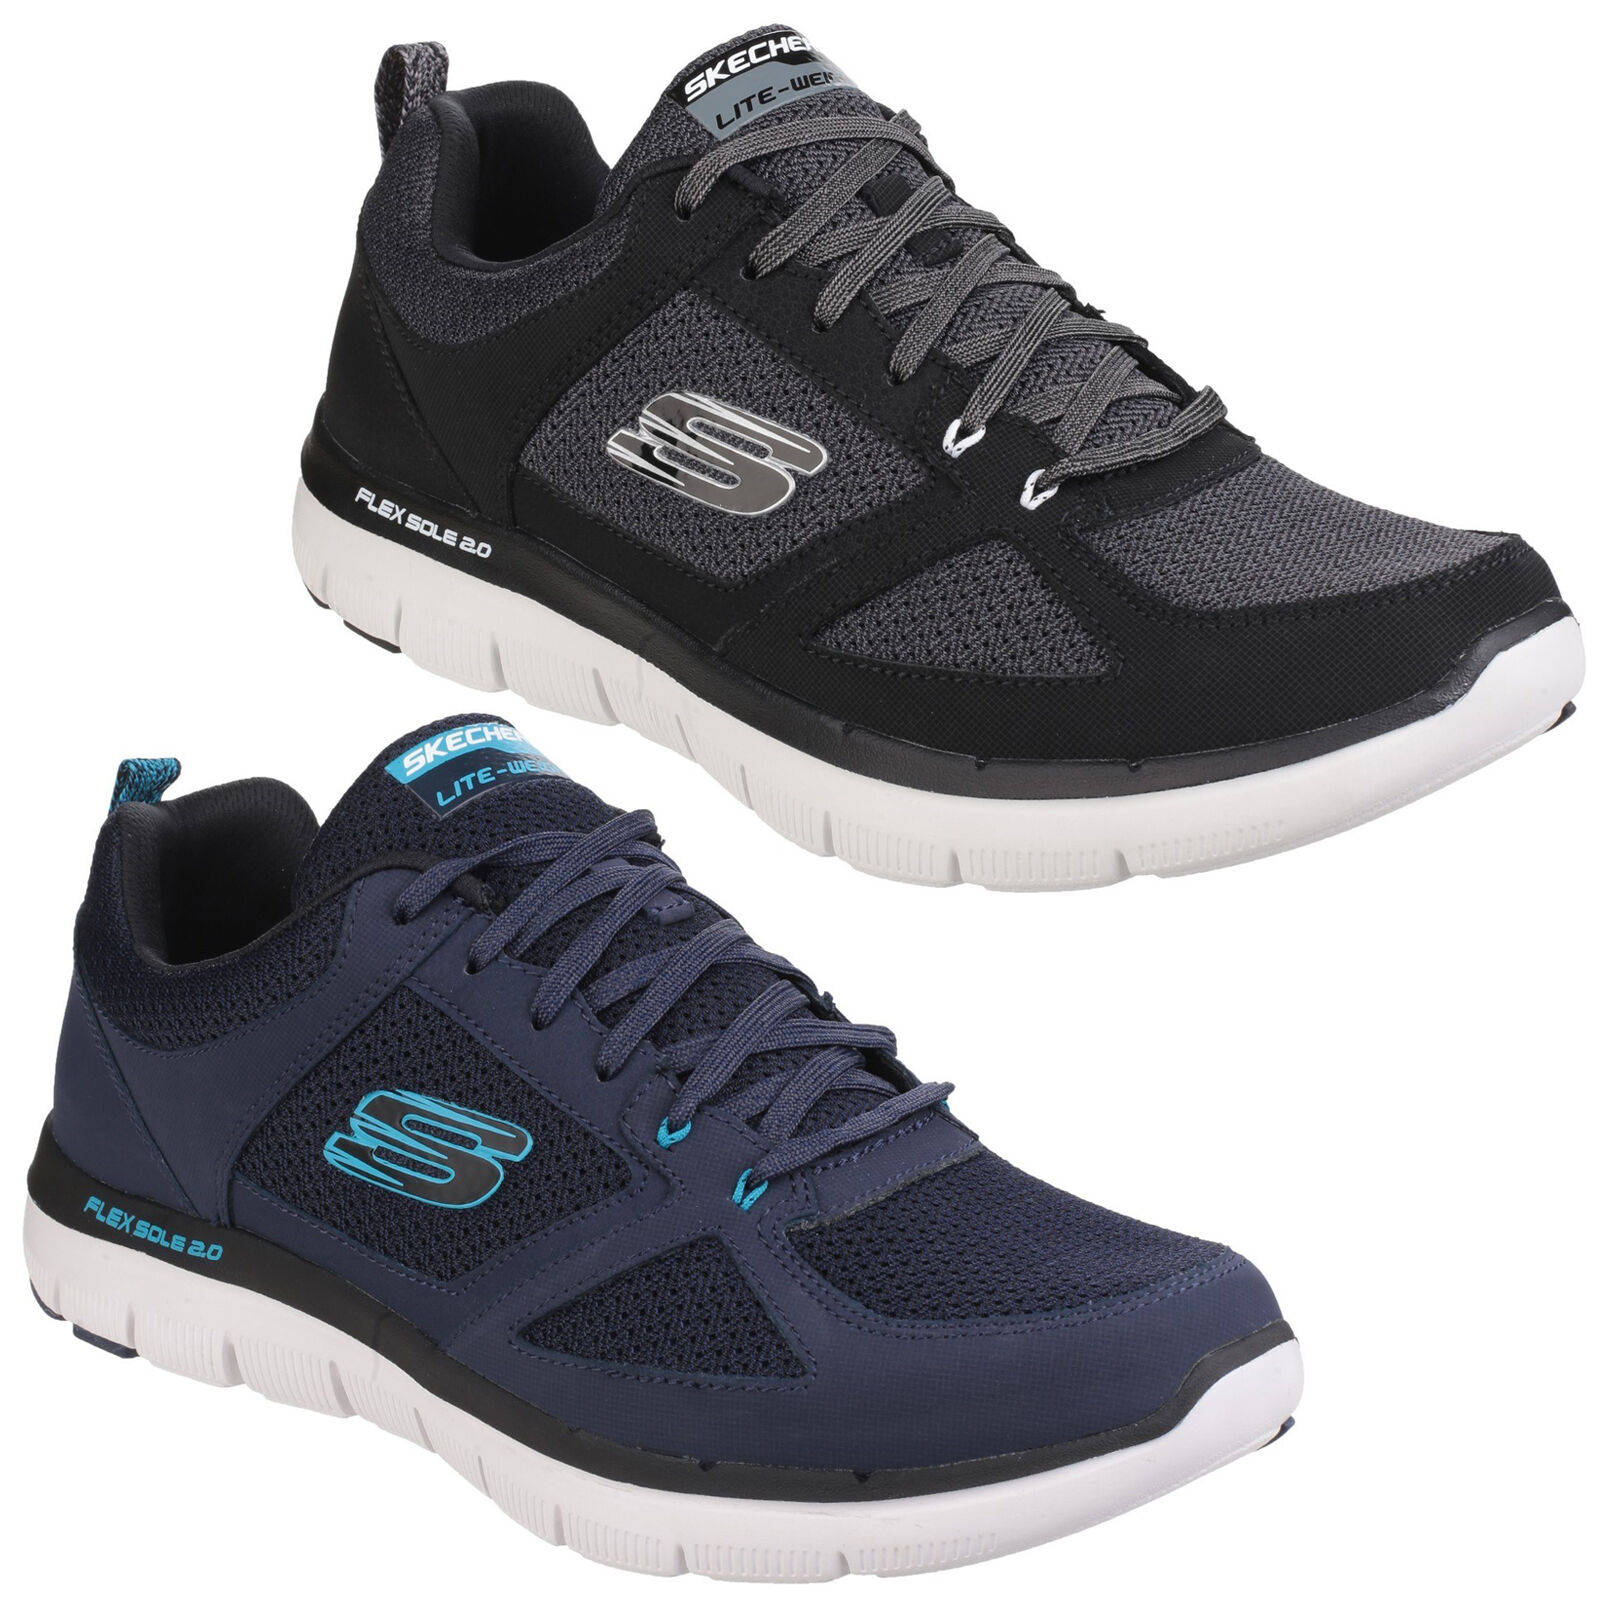 Skechers Flex Advantage 2.0 Mens Athletic Memory Foam Trainers shoes UK6-12